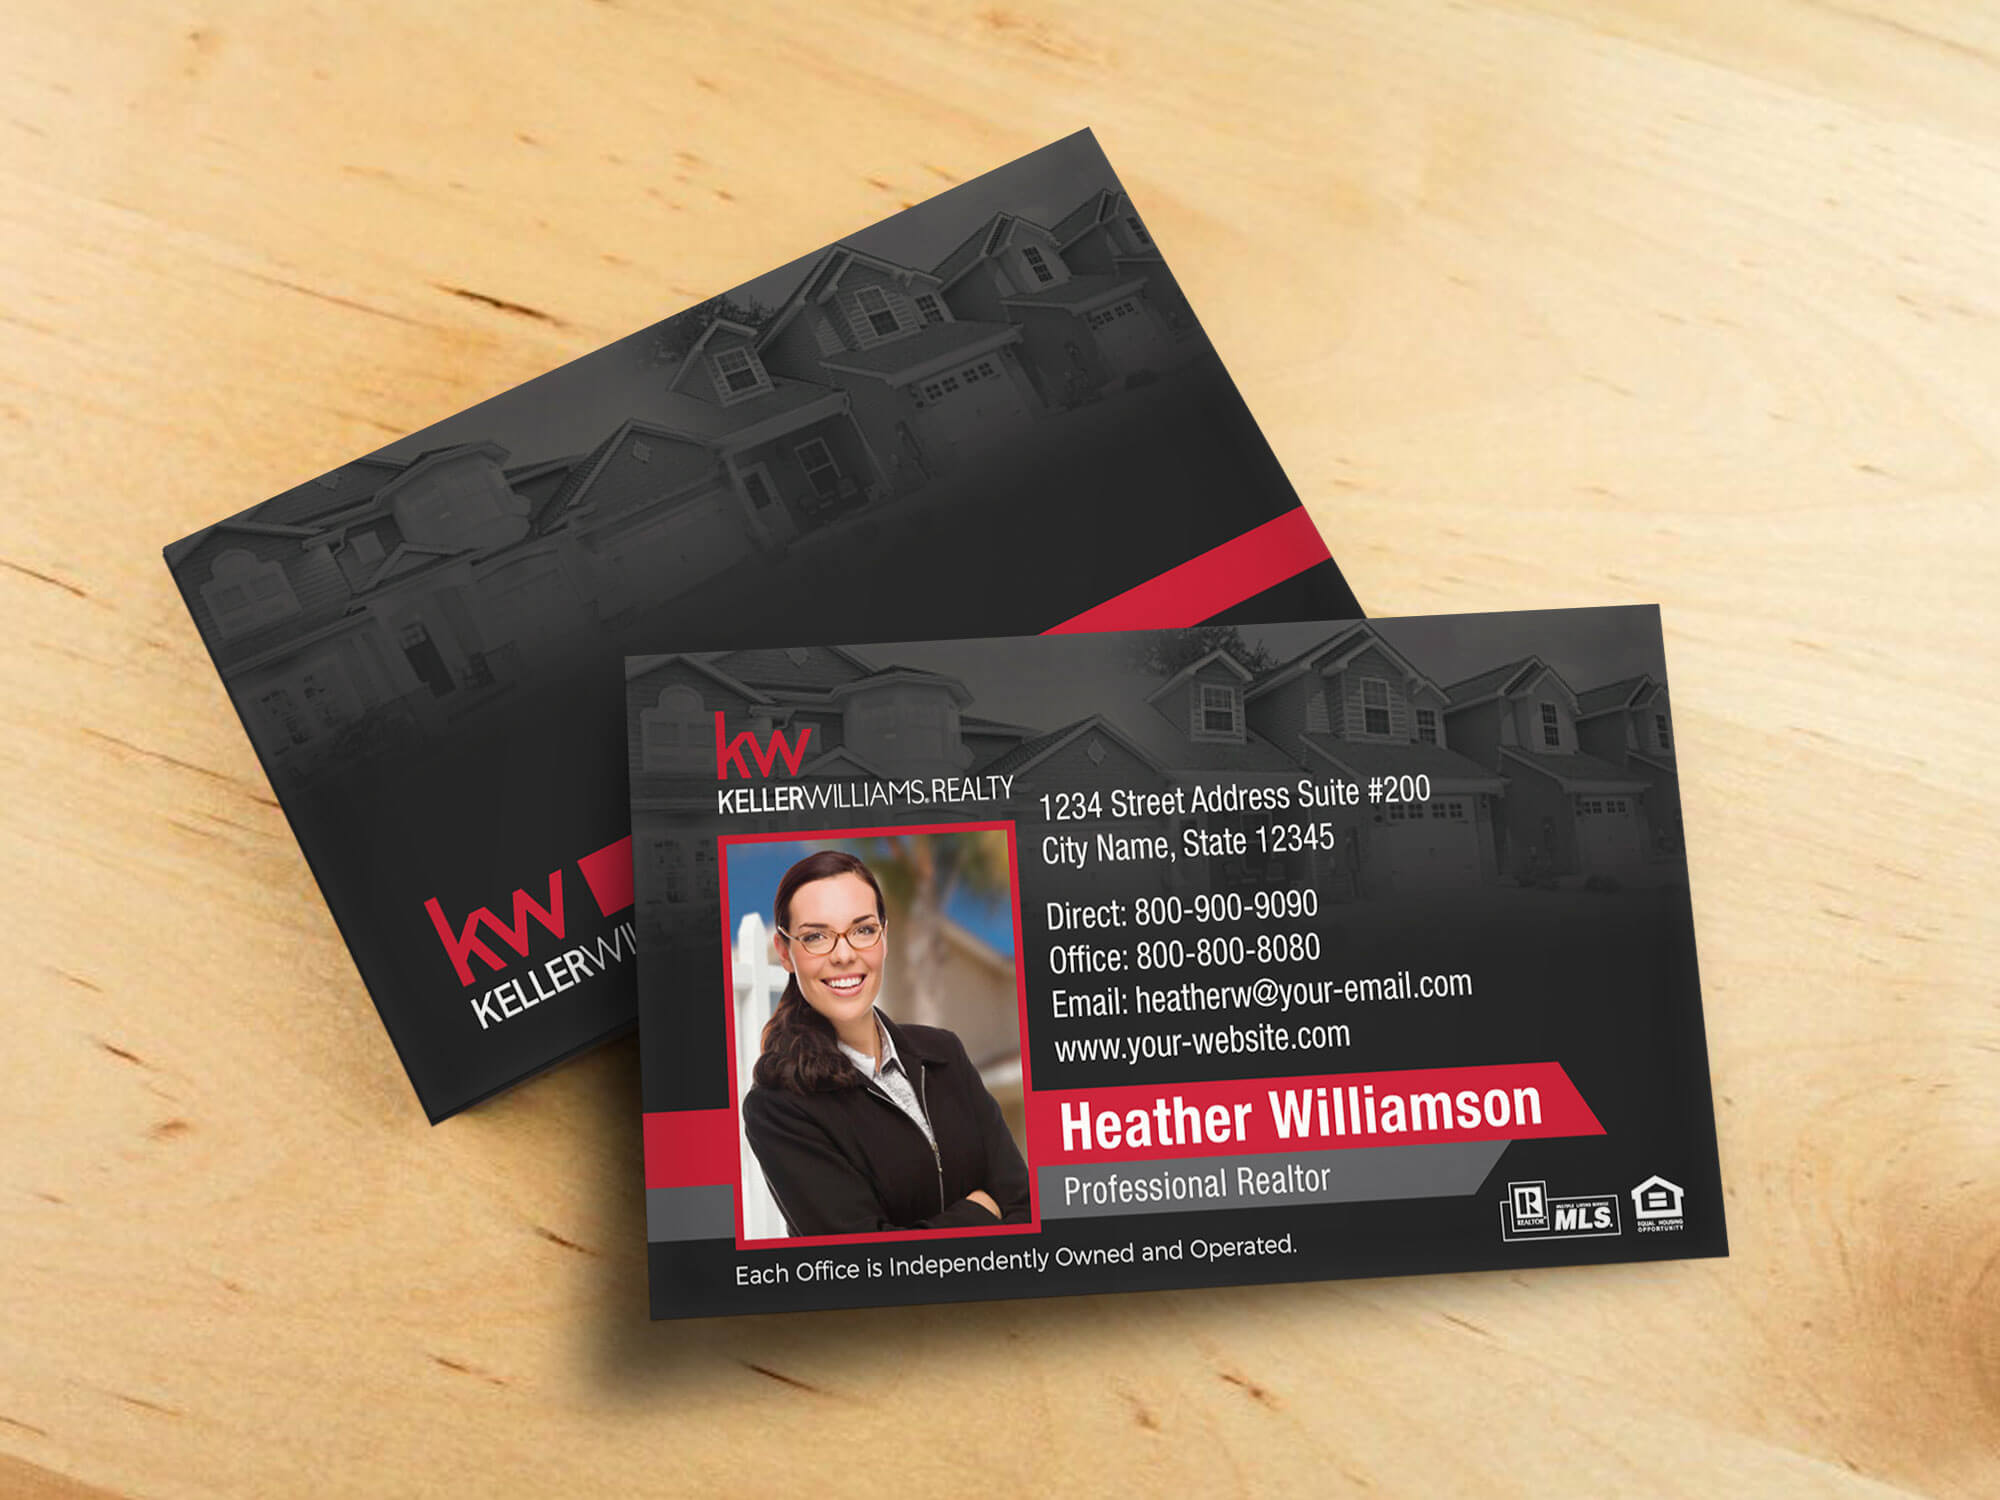 Keller Williams Business Card Template – Bc1861Bl Kw Throughout Keller Williams Business Card Templates